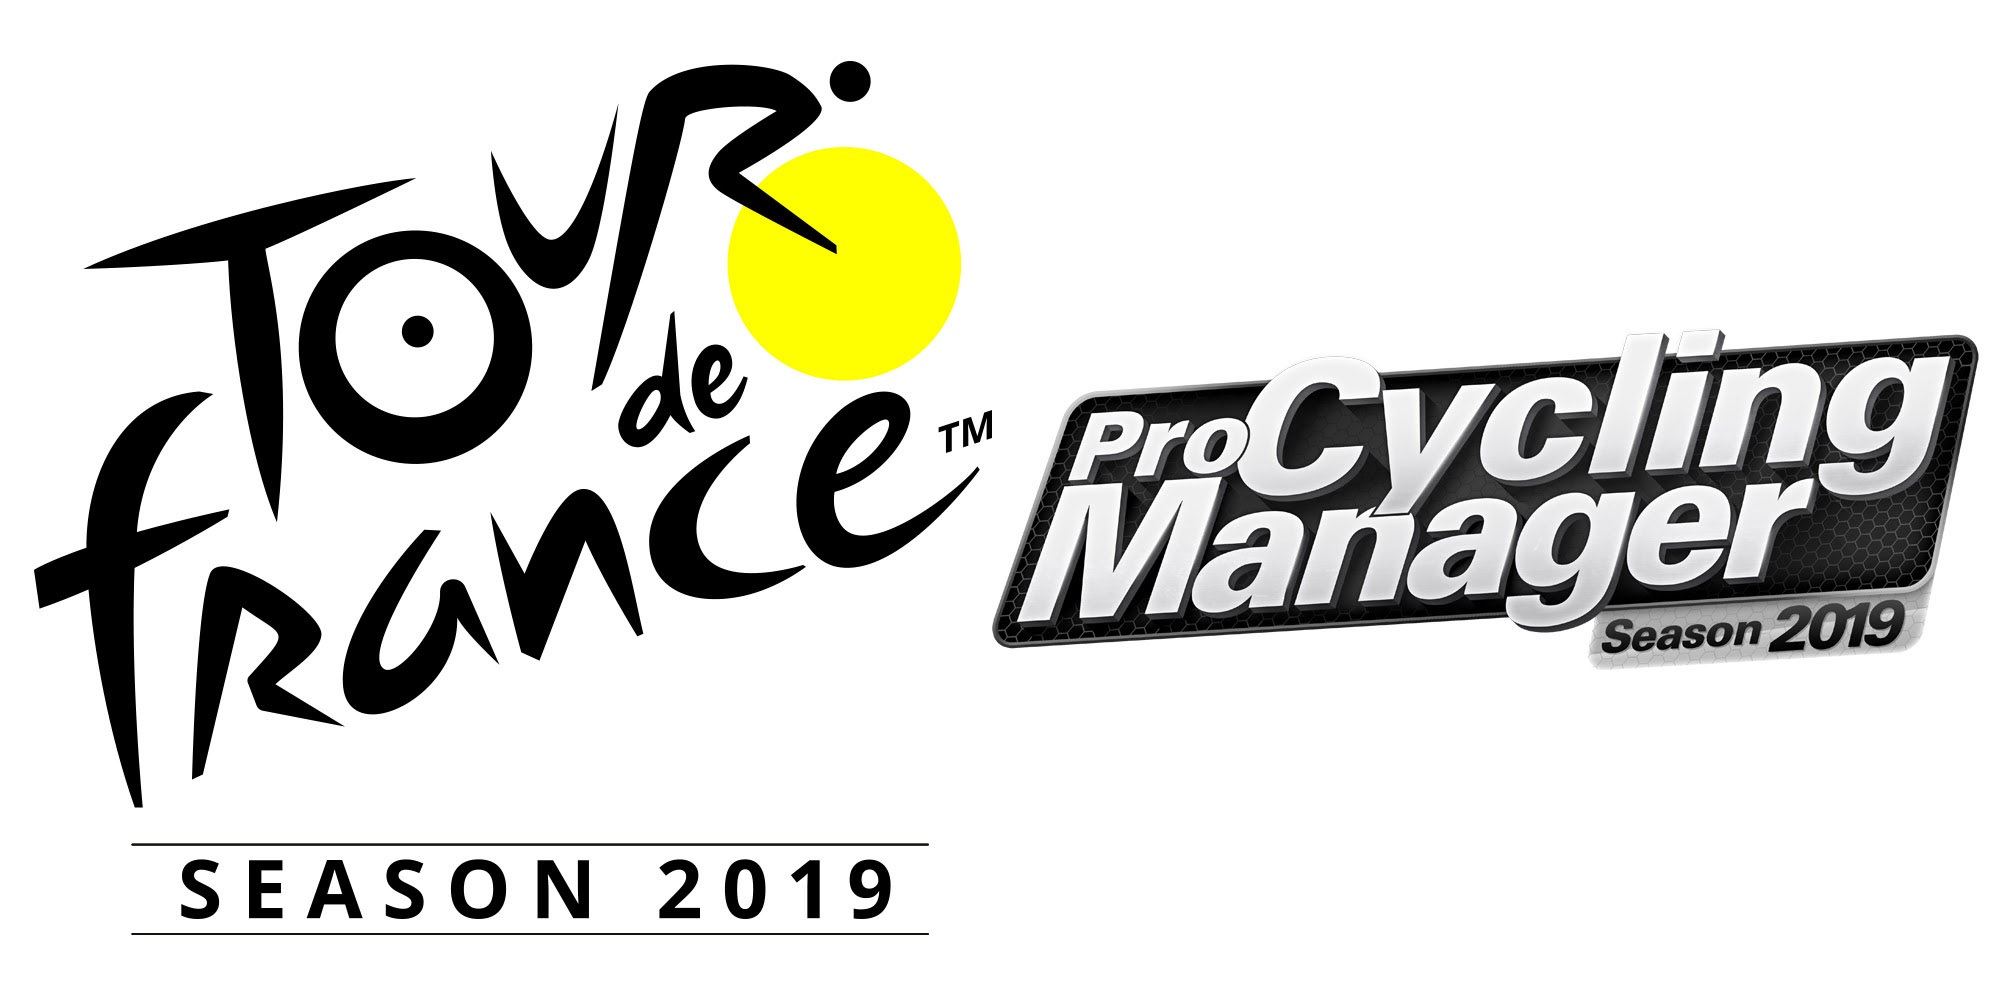 Cover Pro Cycling Manager Season 2019: Le Tour De France